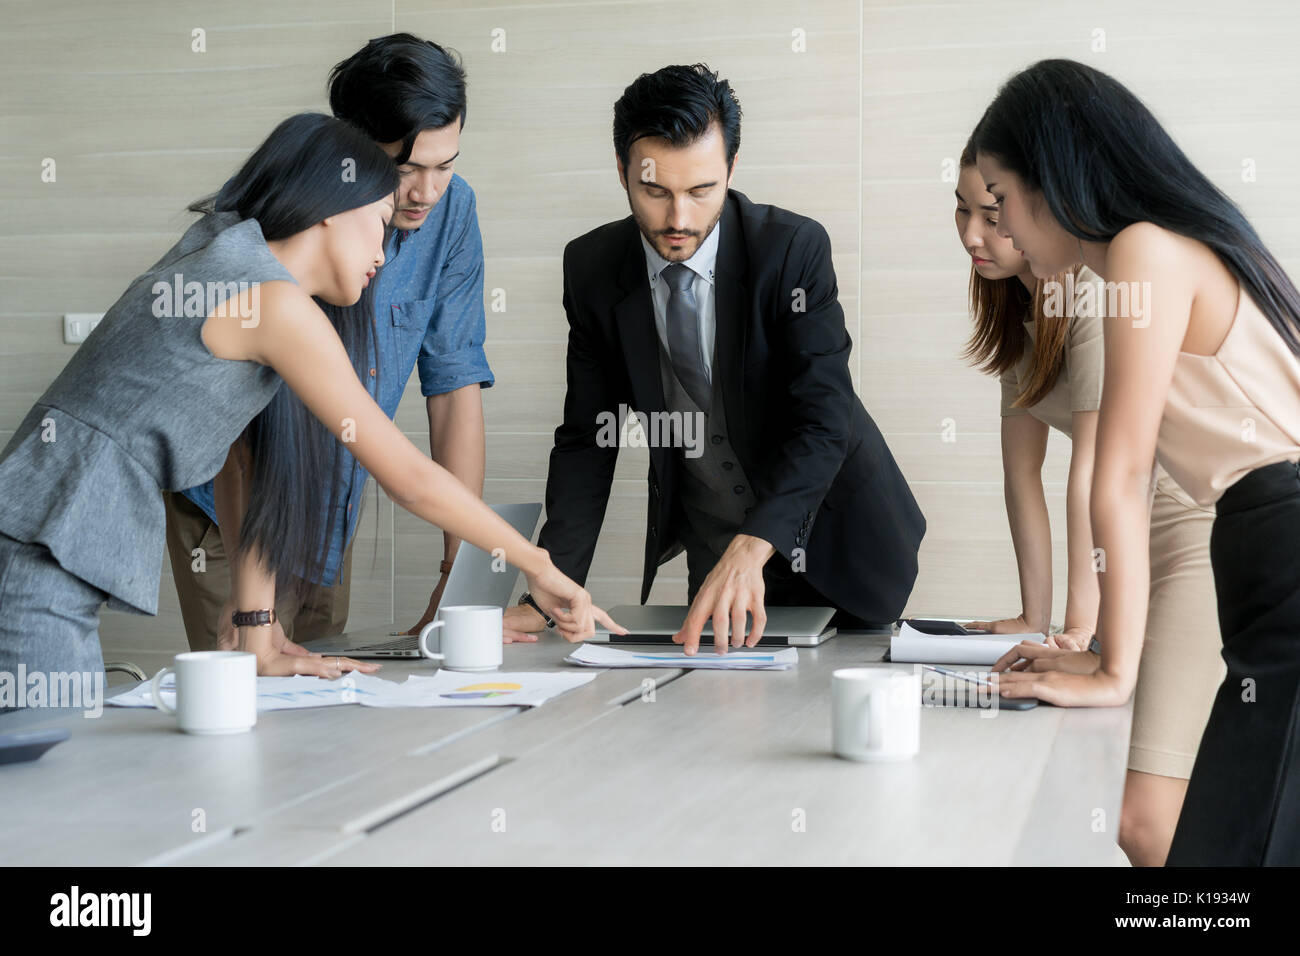 Group of multi-ethnic business partners discussing ideas in meeting room at office. Business people meeting corporate communication teamwork concept. - Stock Image